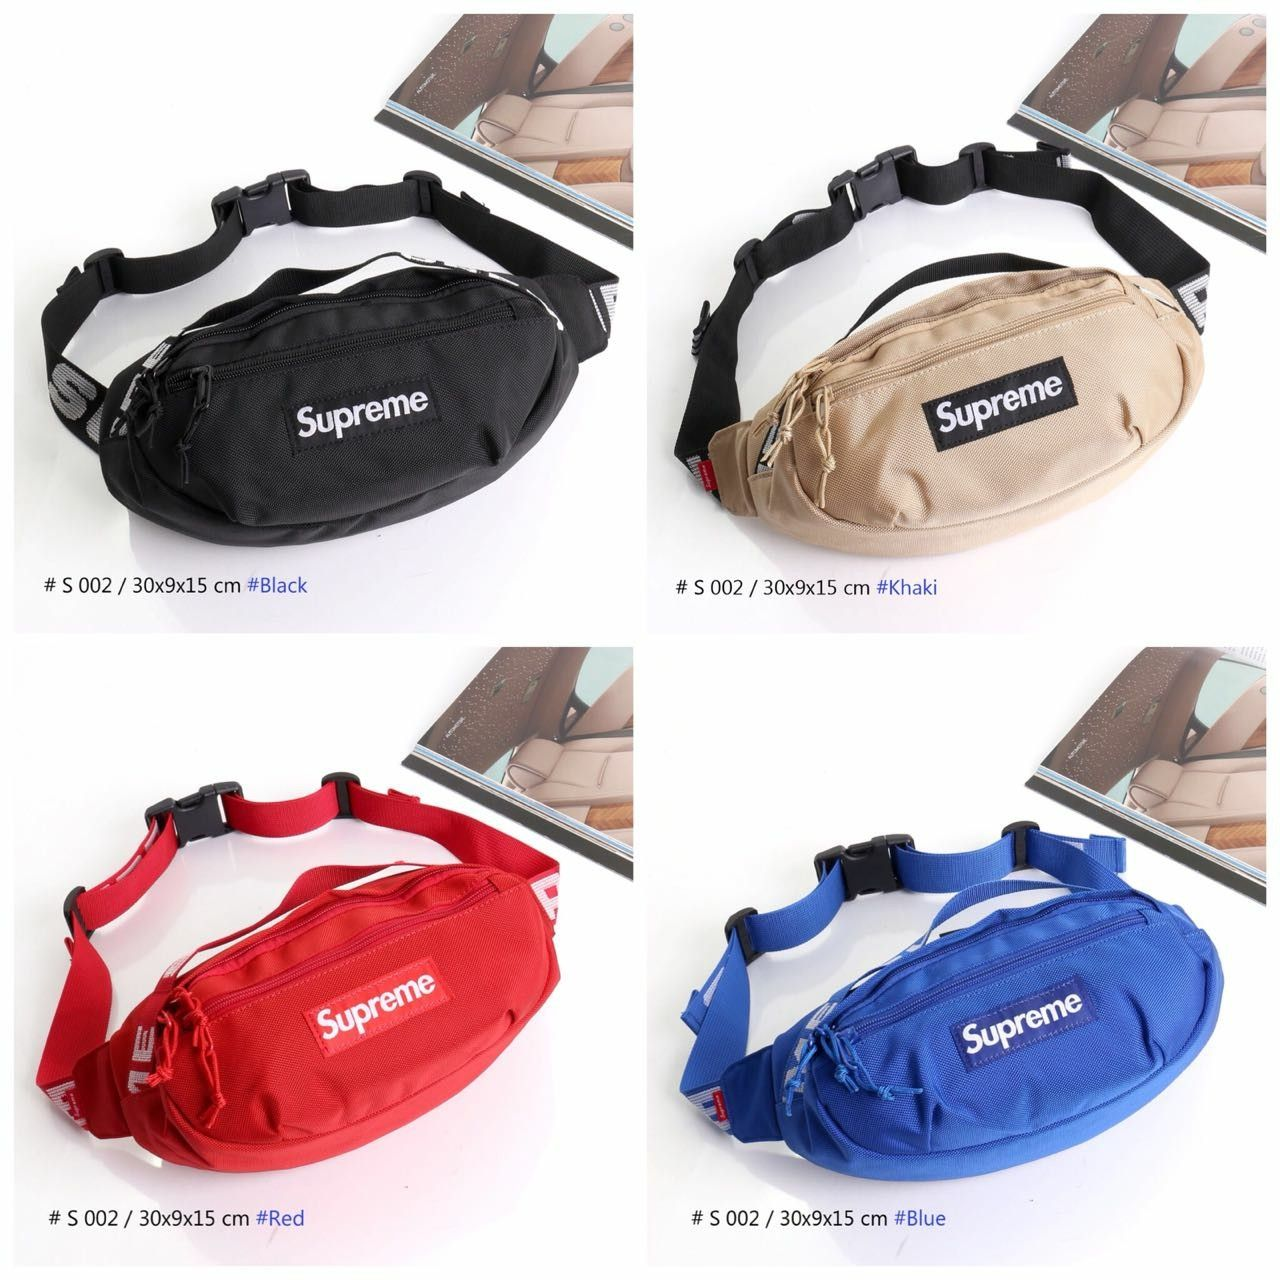 Adabox 002 waist bag supreme* s 002 uk 30x9x15cm bahan kanvas nilon